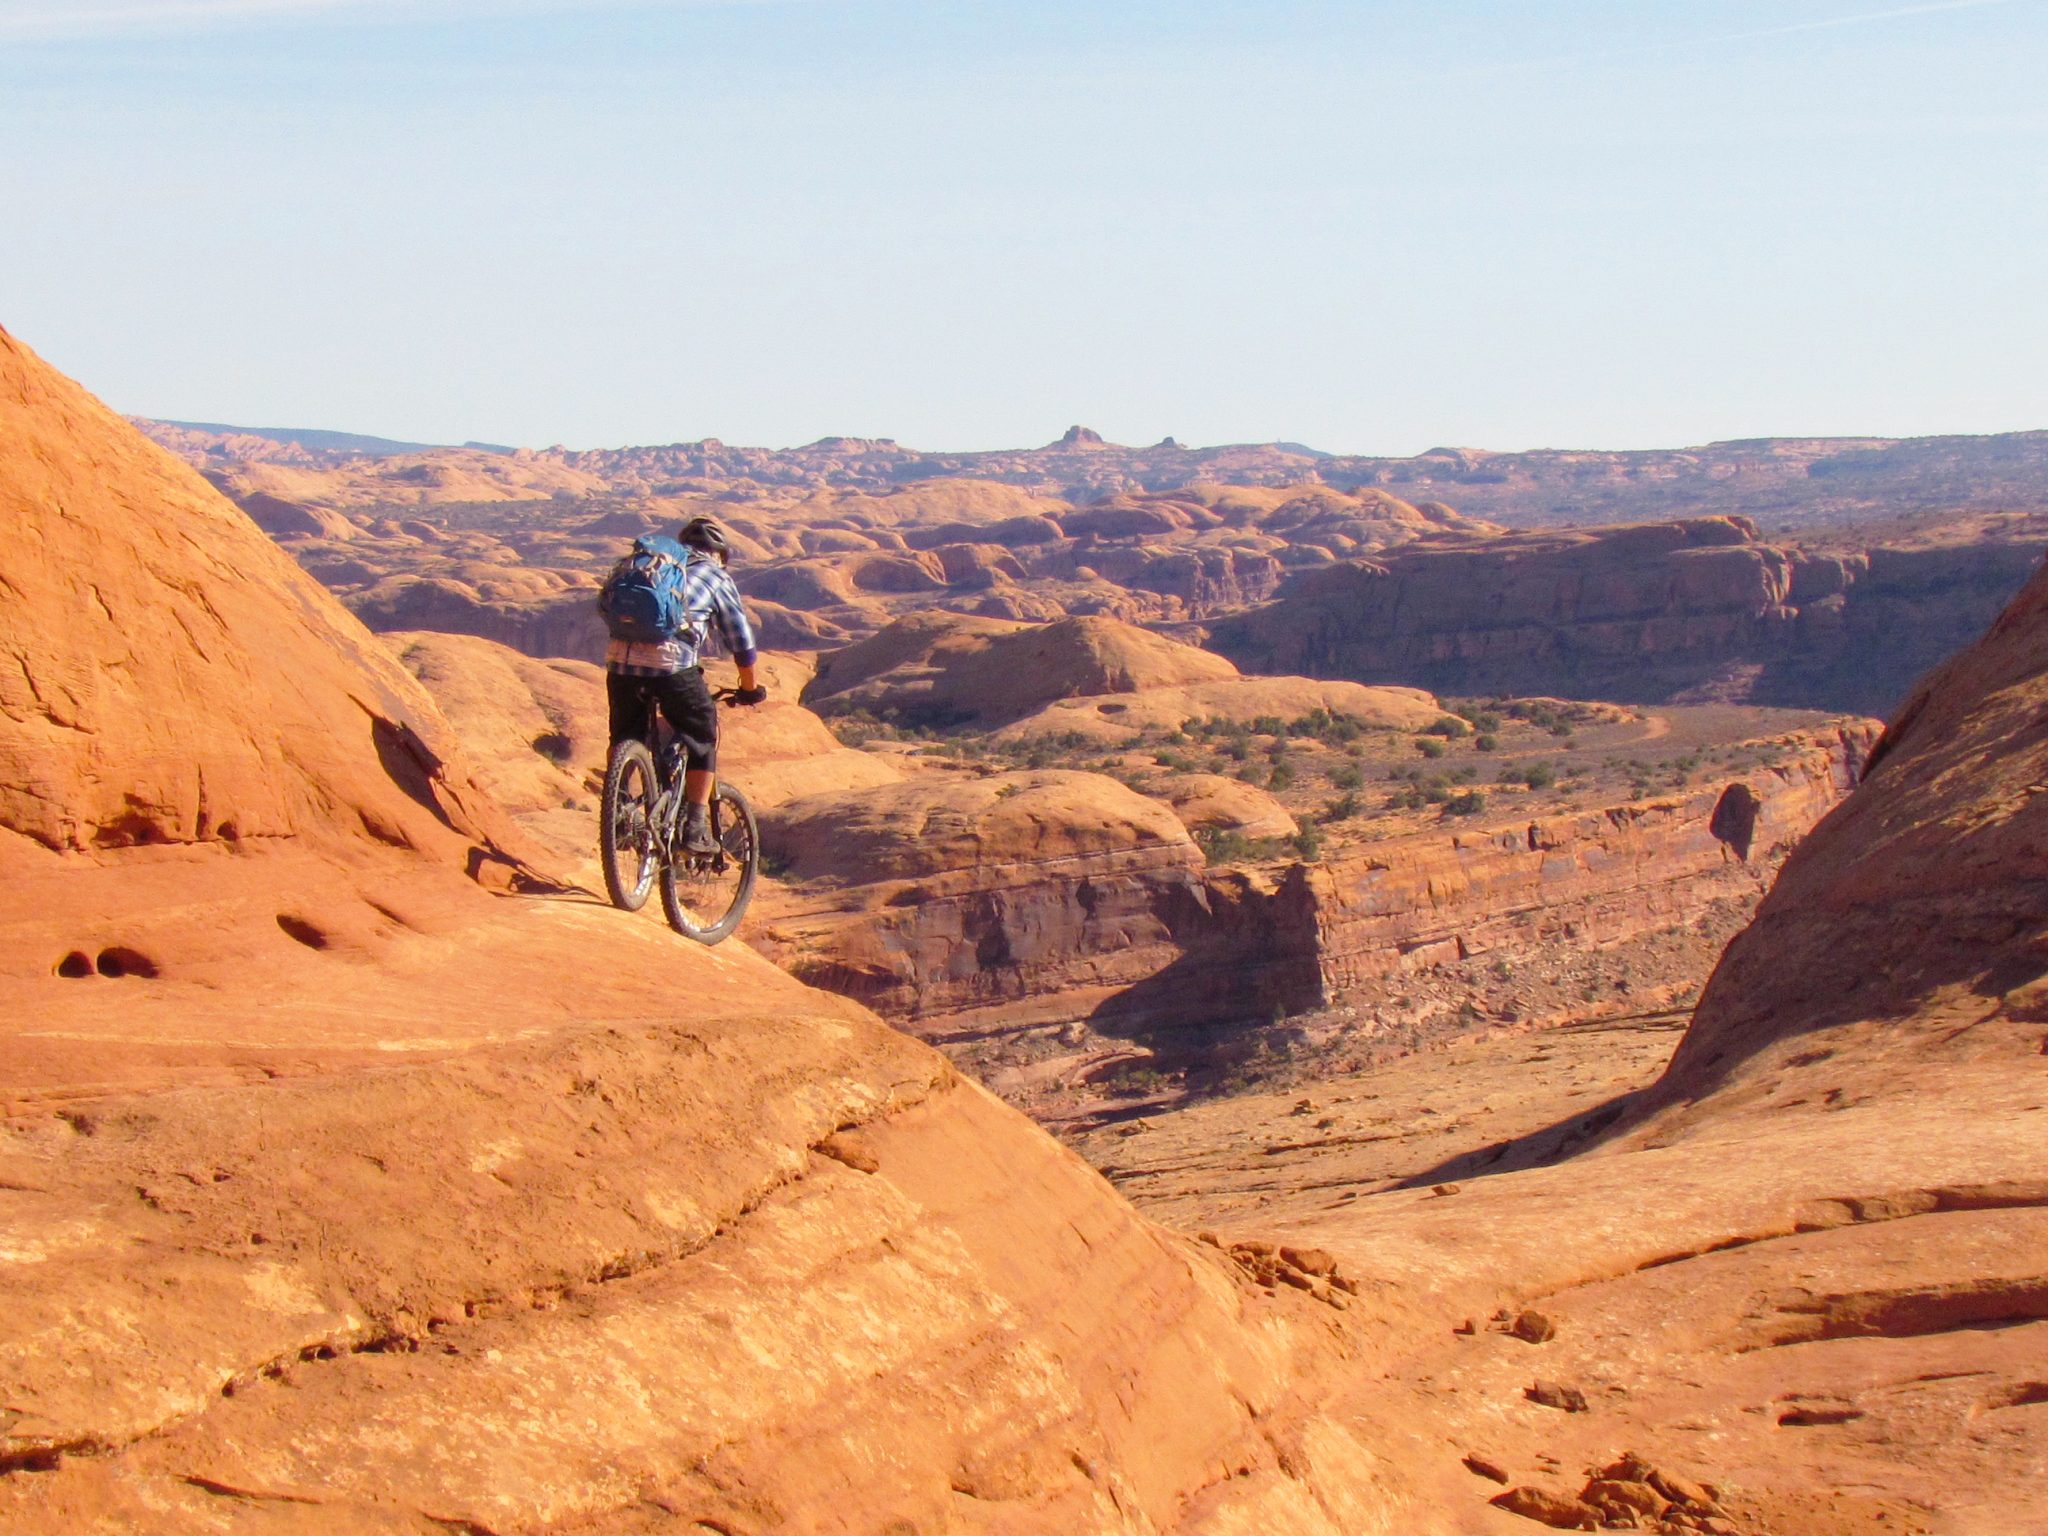 The Amasa Back guided mountain bike tour can include the Rockstacker section with rollercoaster slickrock